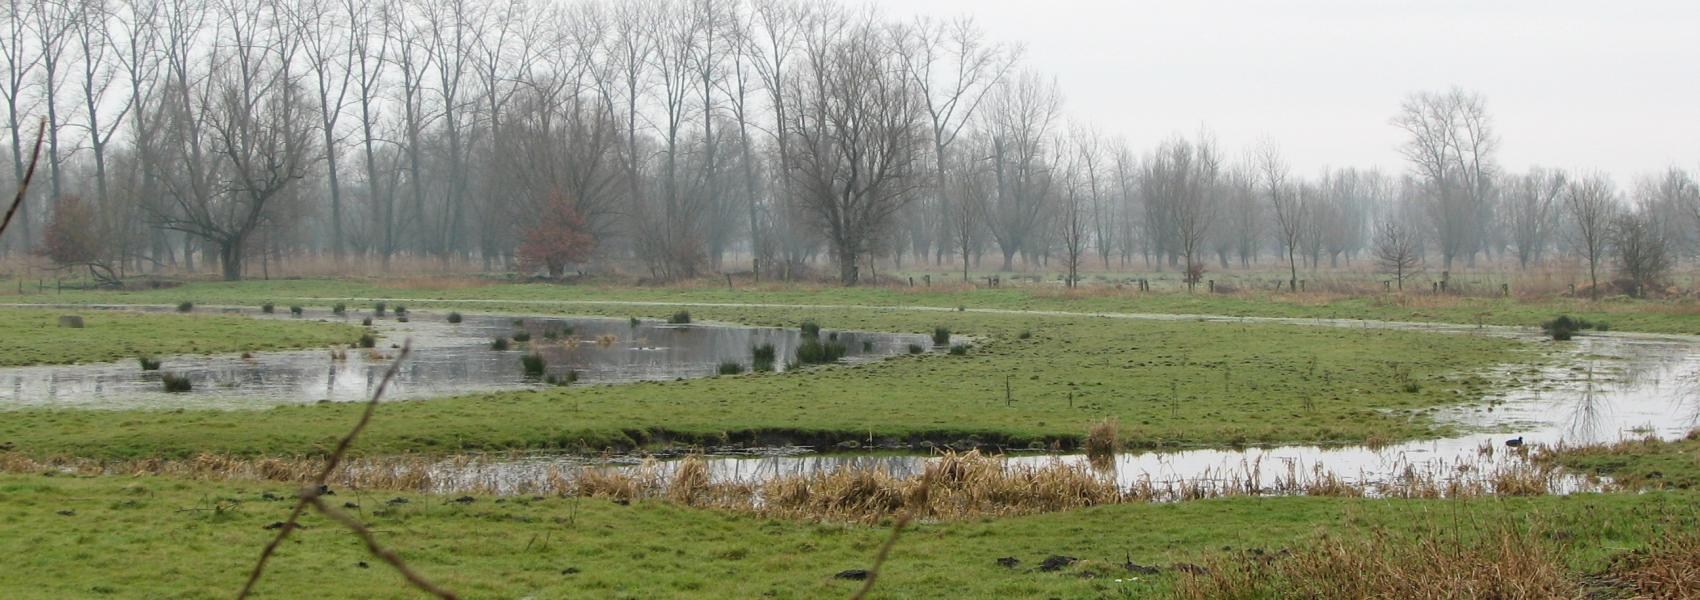 water in het landschap